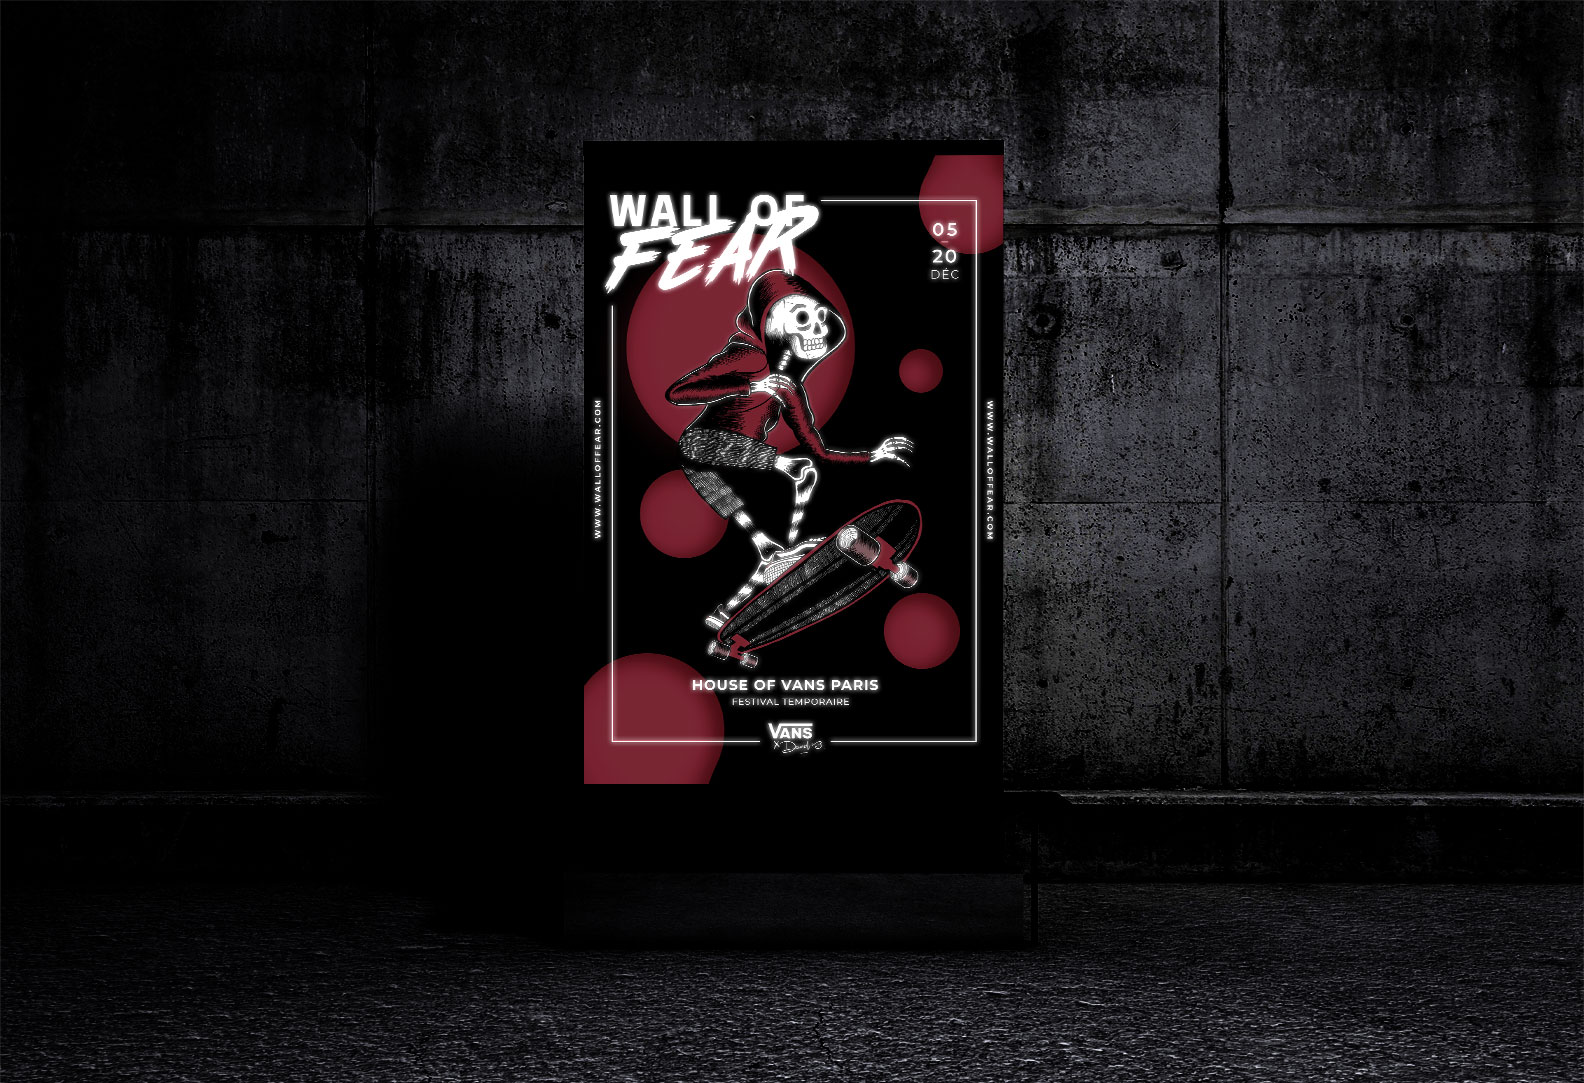 wall-of-fear-affiche-nuit